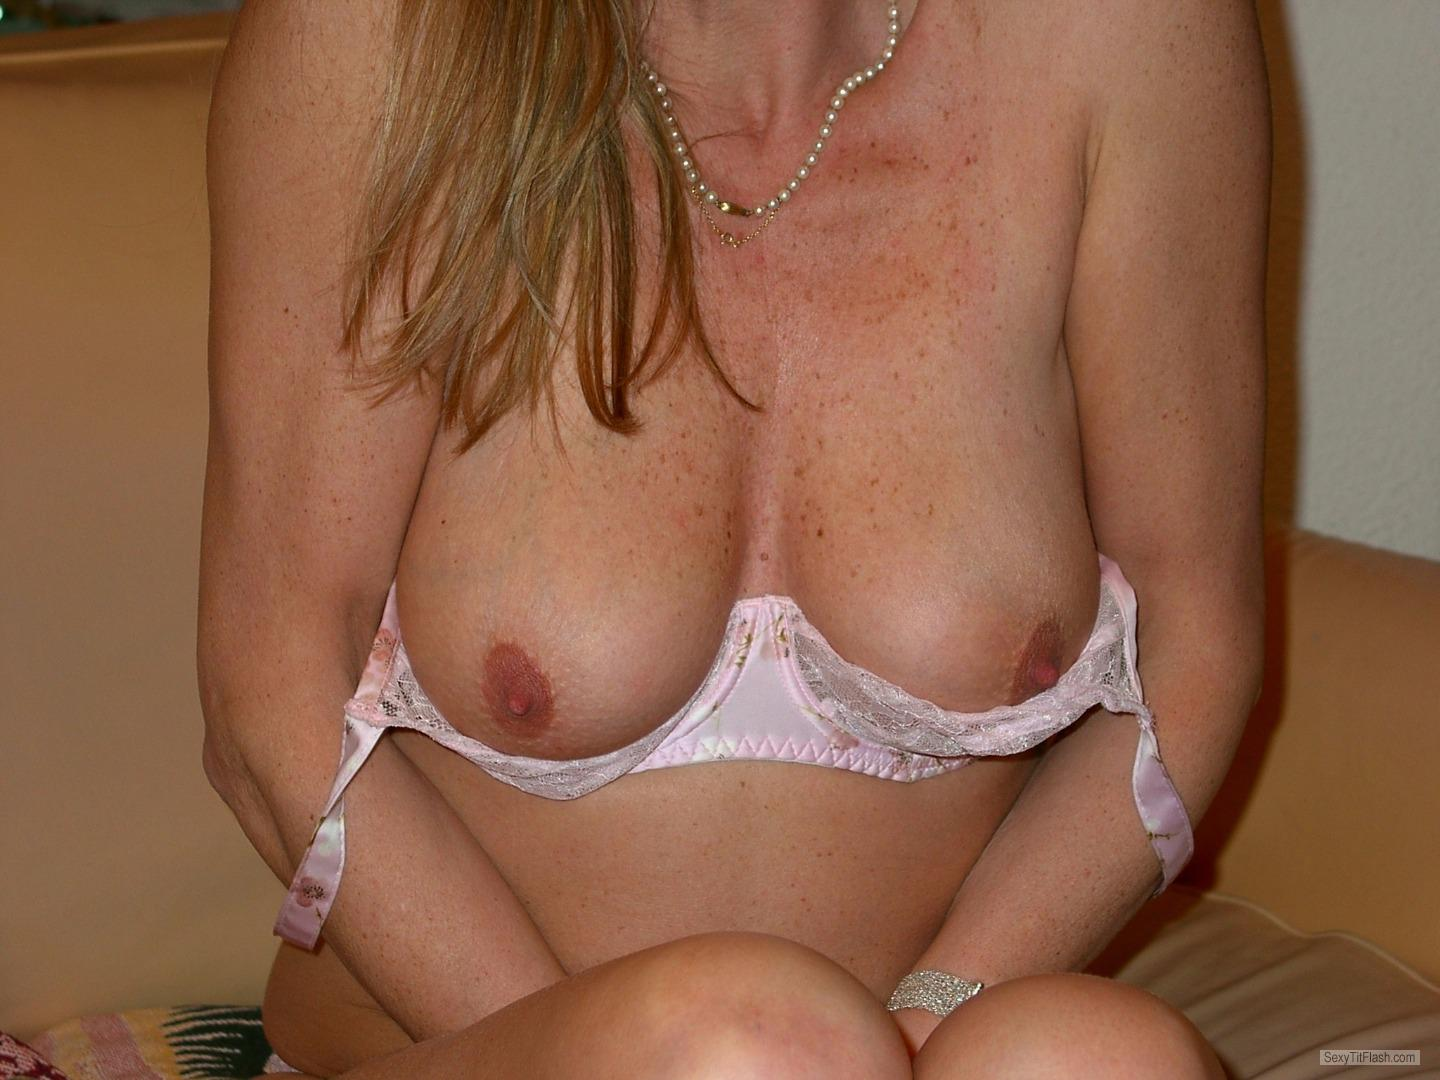 Tit Flash: My Big Tits - Nicy from France